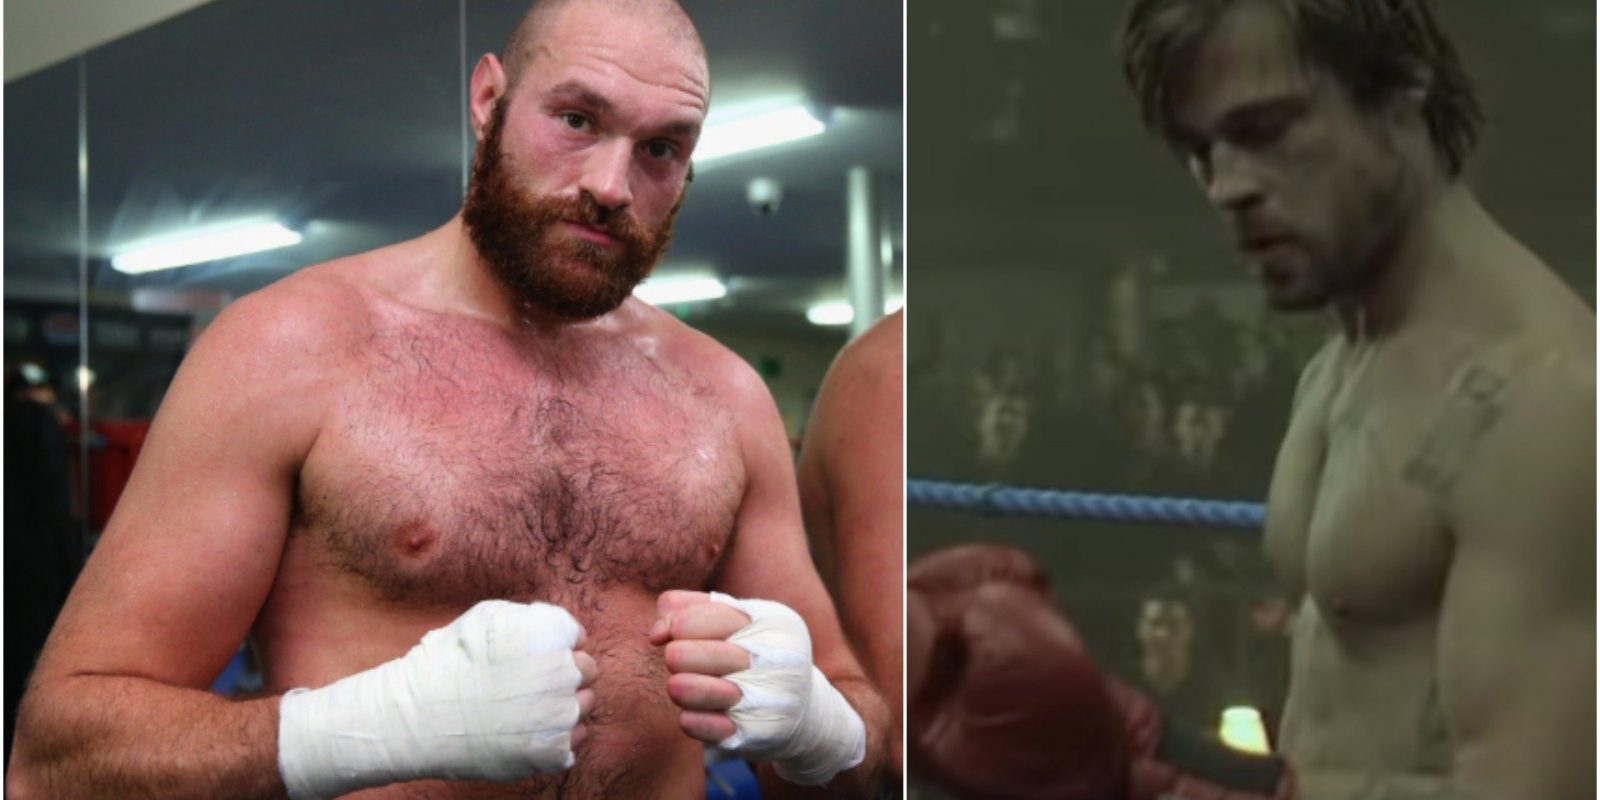 English travellers like Tyson Fury are taking over boxing around the world, but they fight nothing like Brad Pitt's character in 'Snatch'